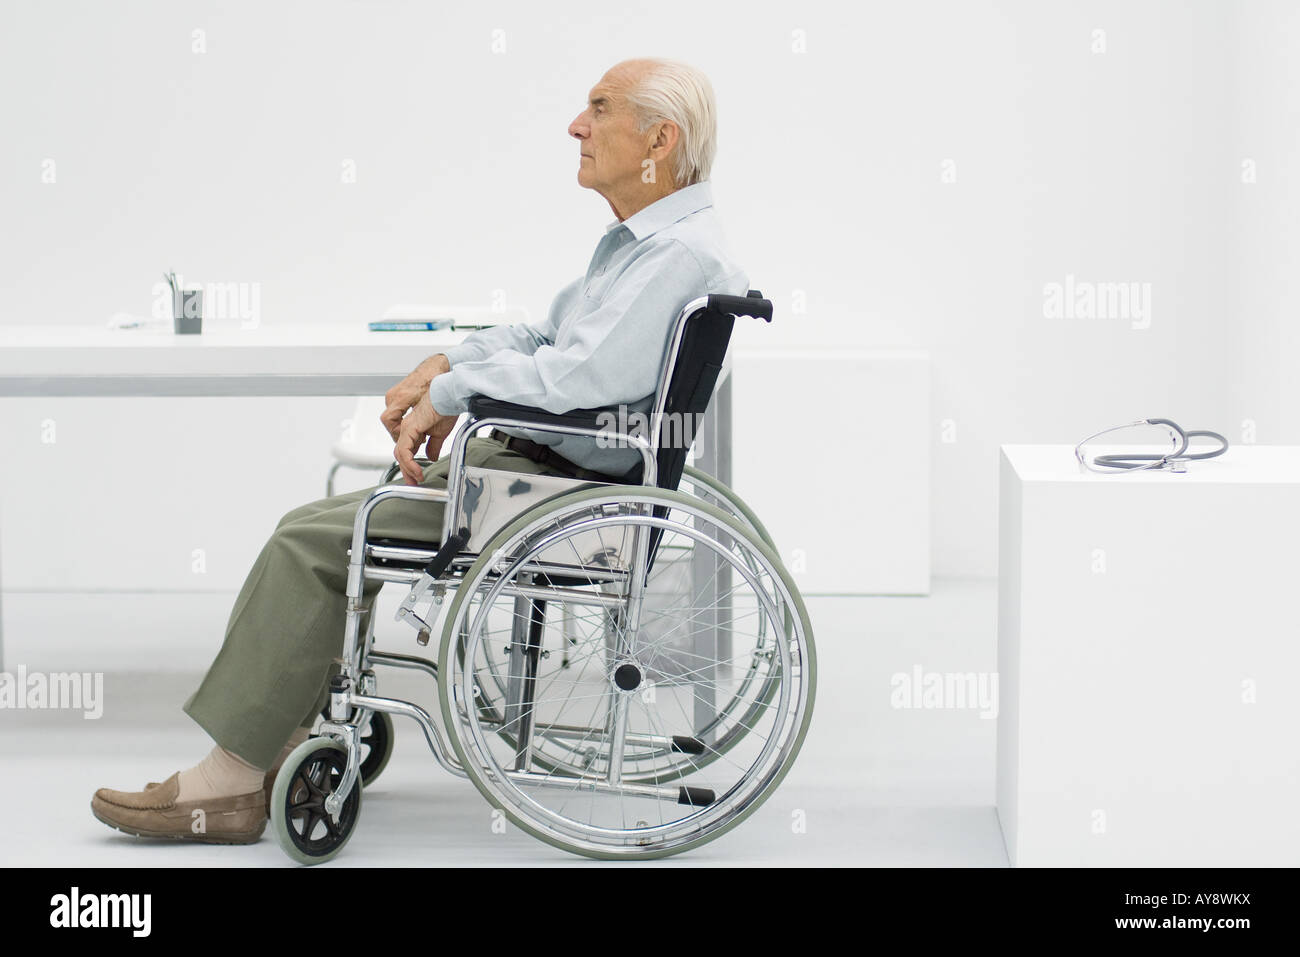 Elderly man sitting in wheelchair in doctor's office, side view - Stock Image